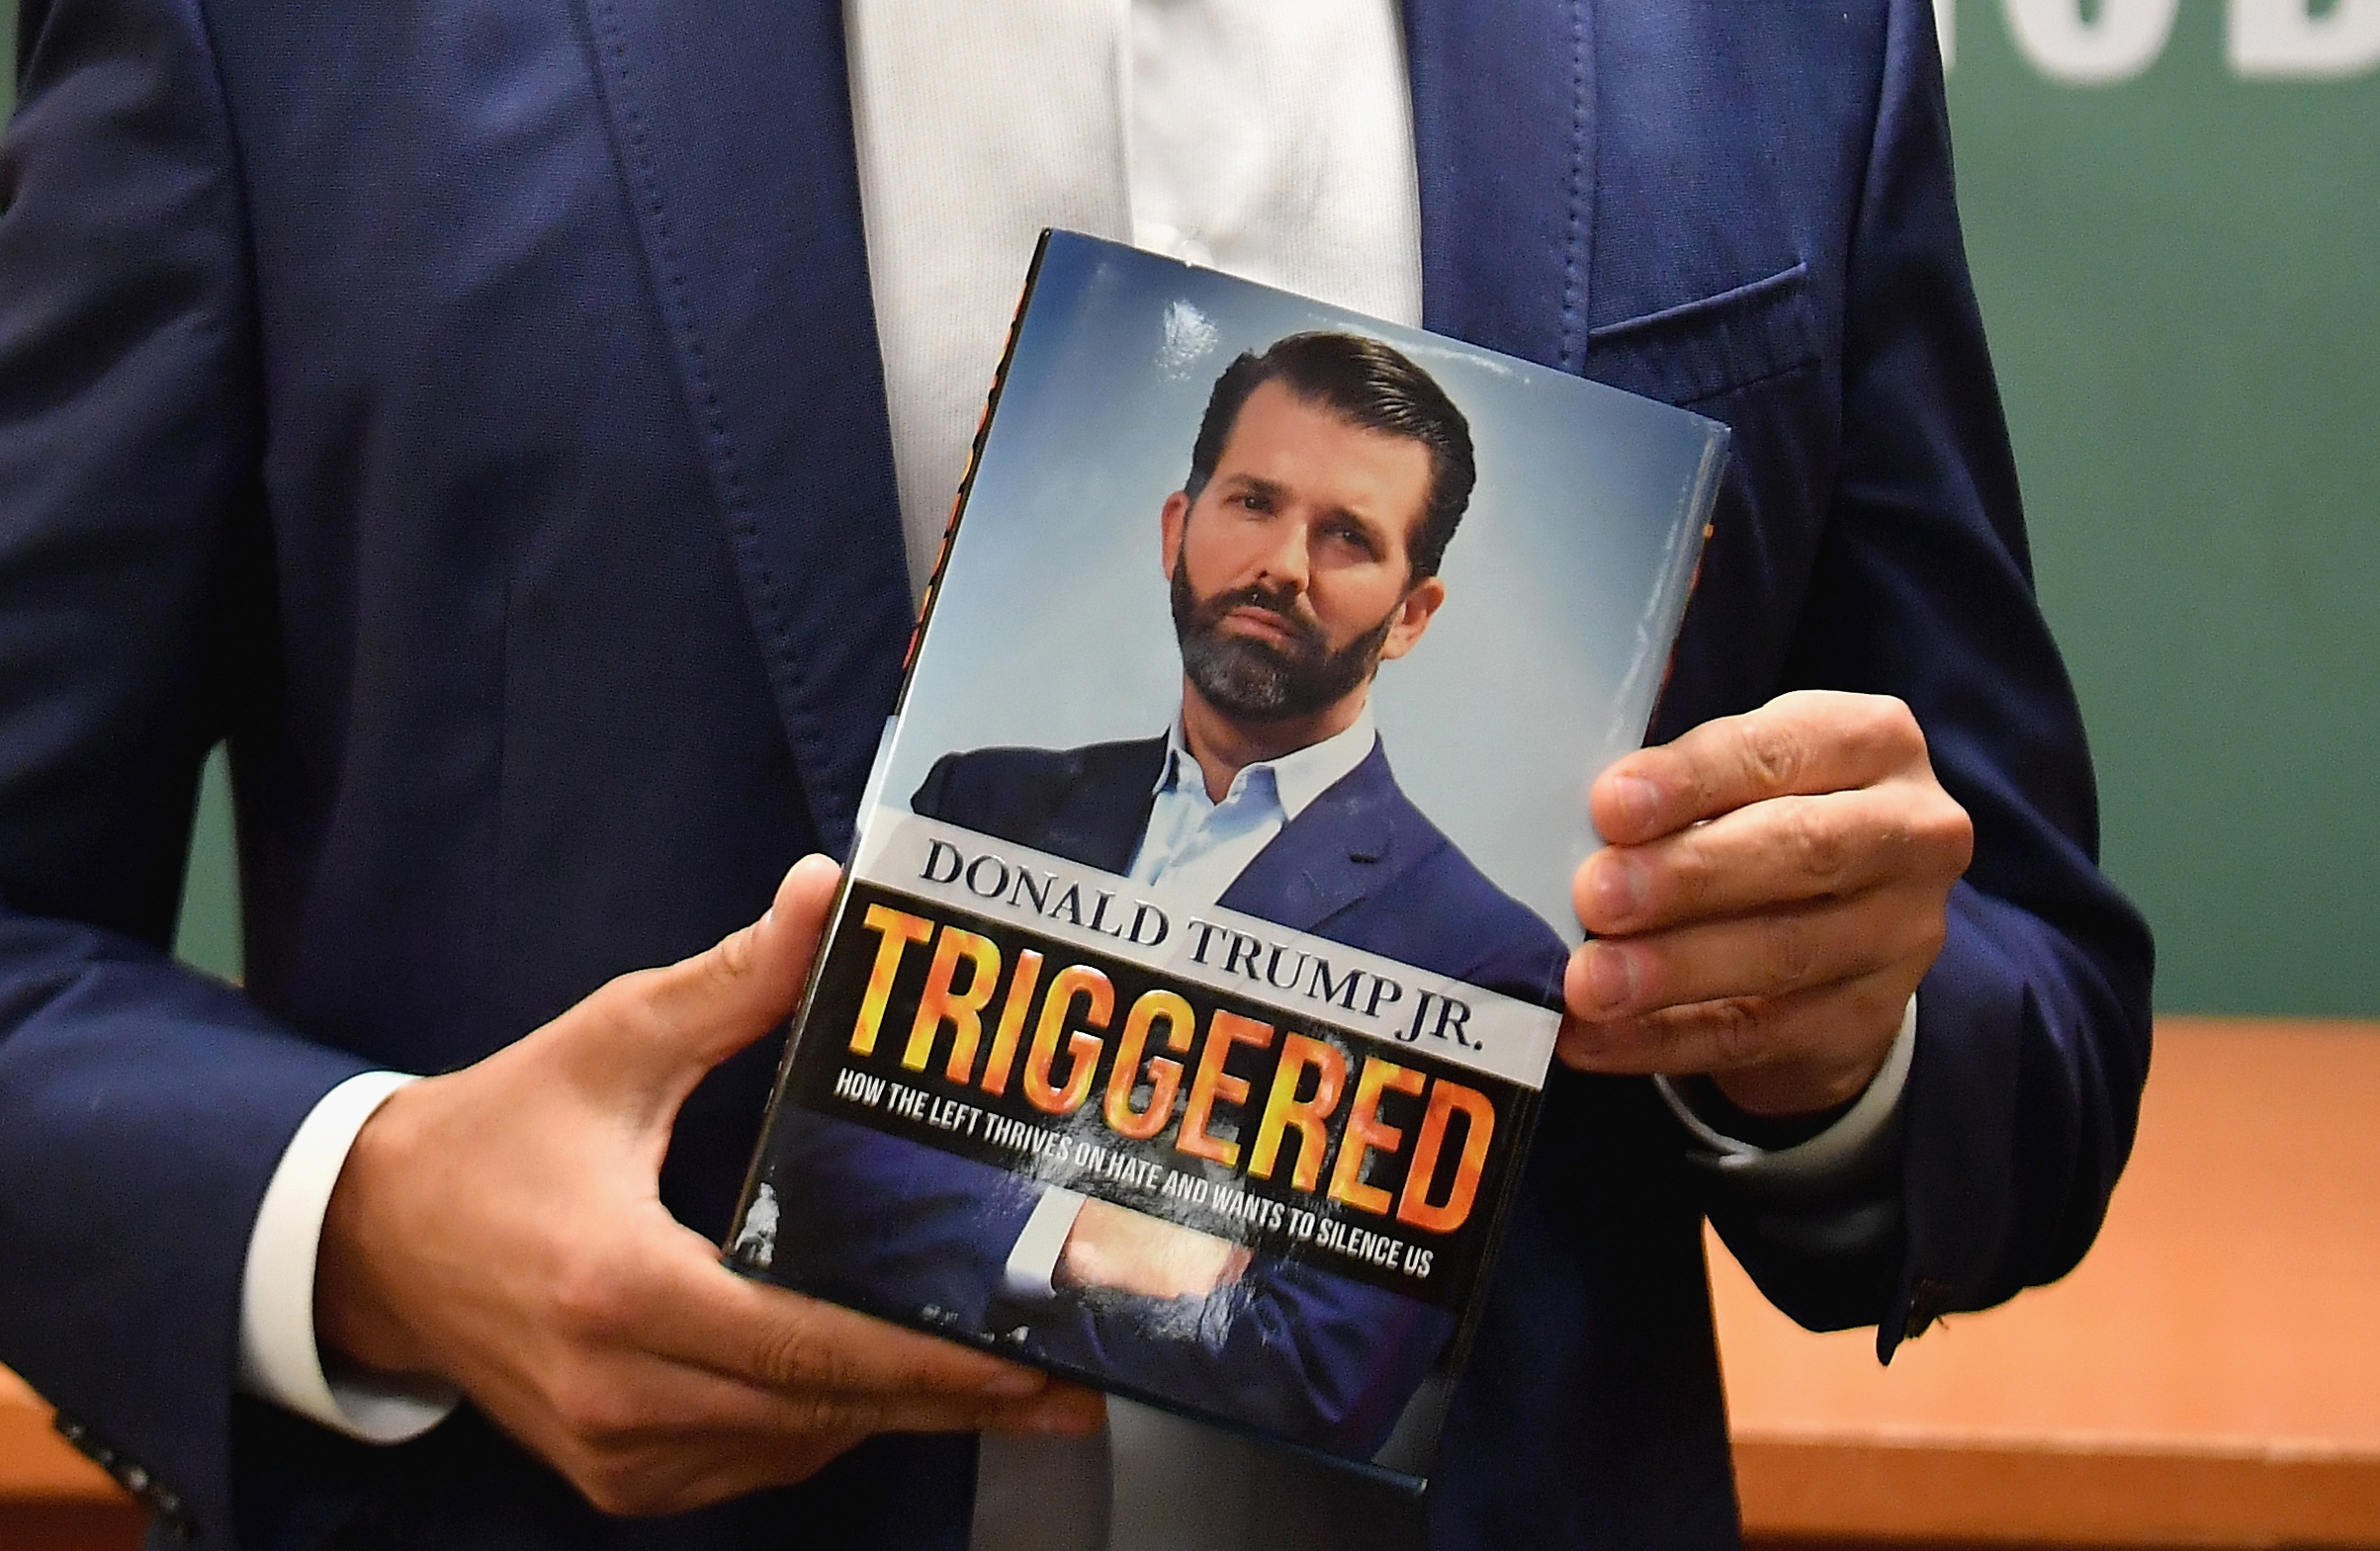 Donald Trump Jr.'s 'Triggered' Tops NYT Best Sellers, But How's It Doing On Other Lists?